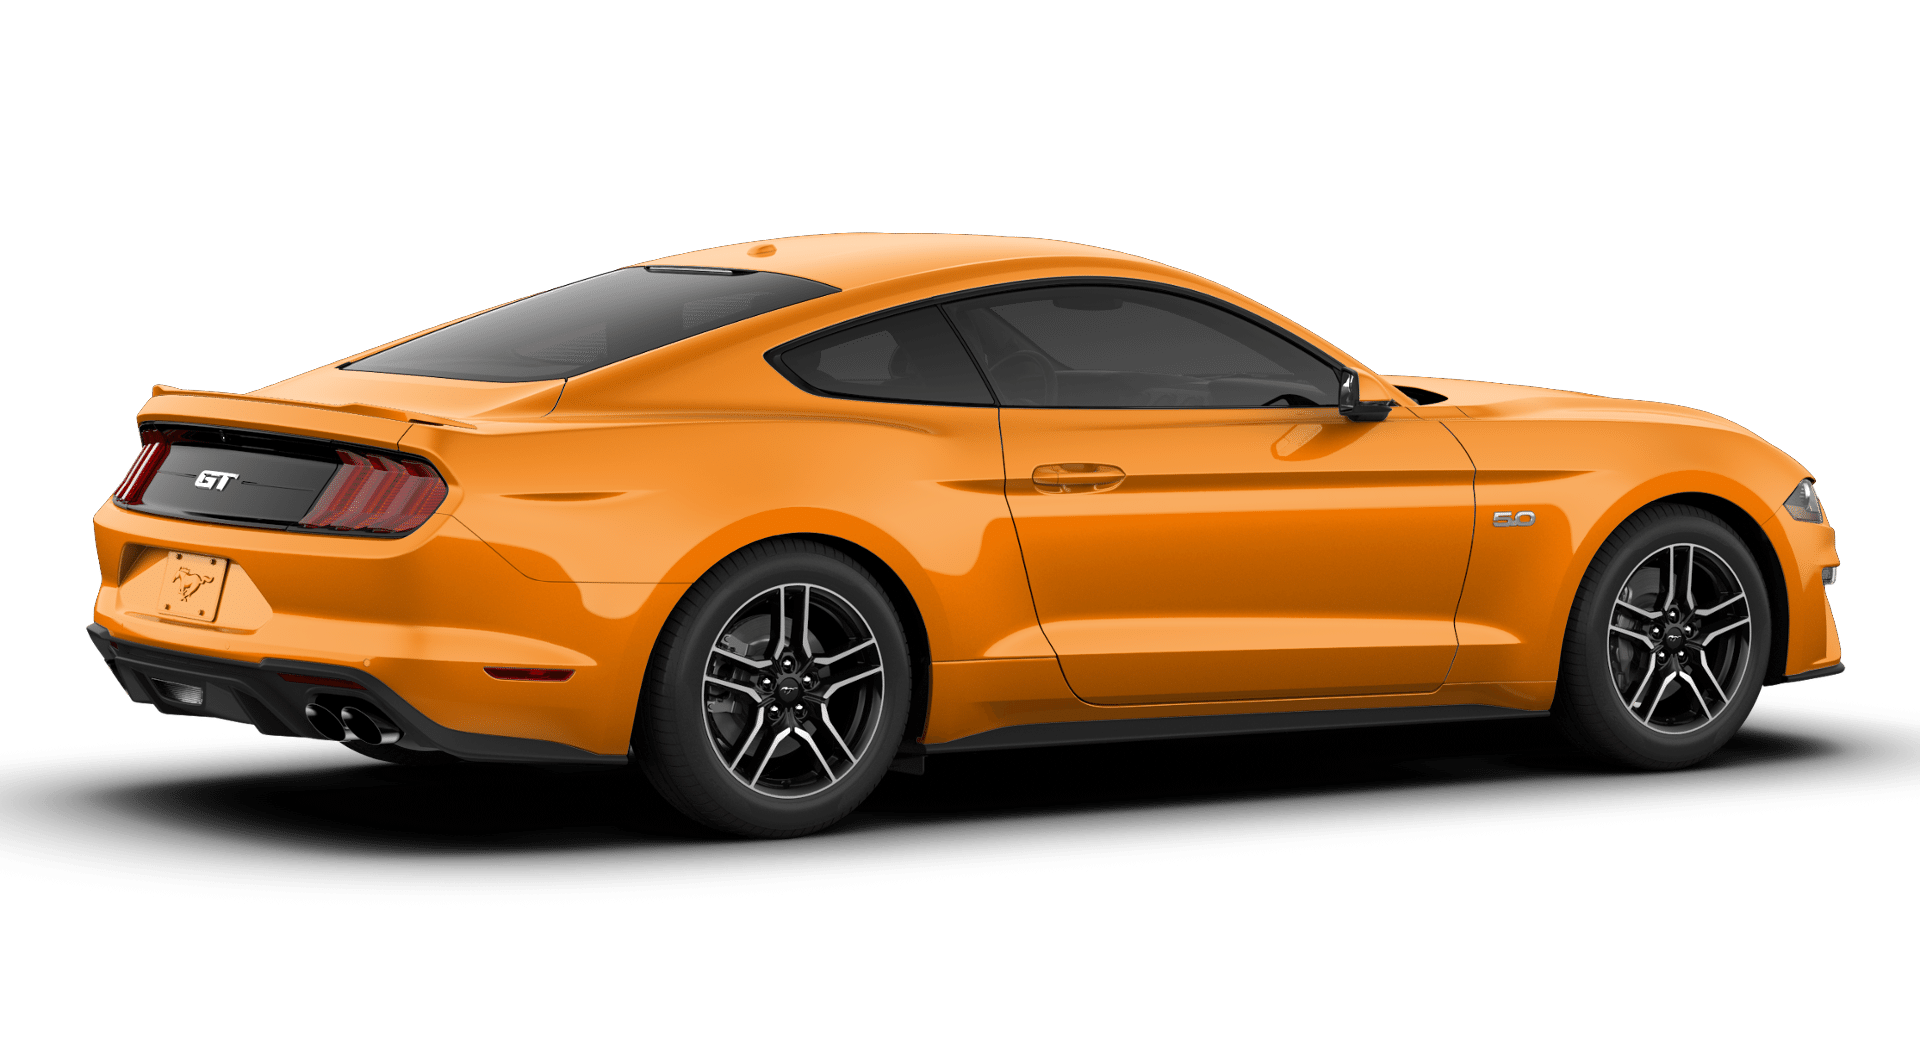 2019 Ford Mustang GT Premium Orange Exterior Side View